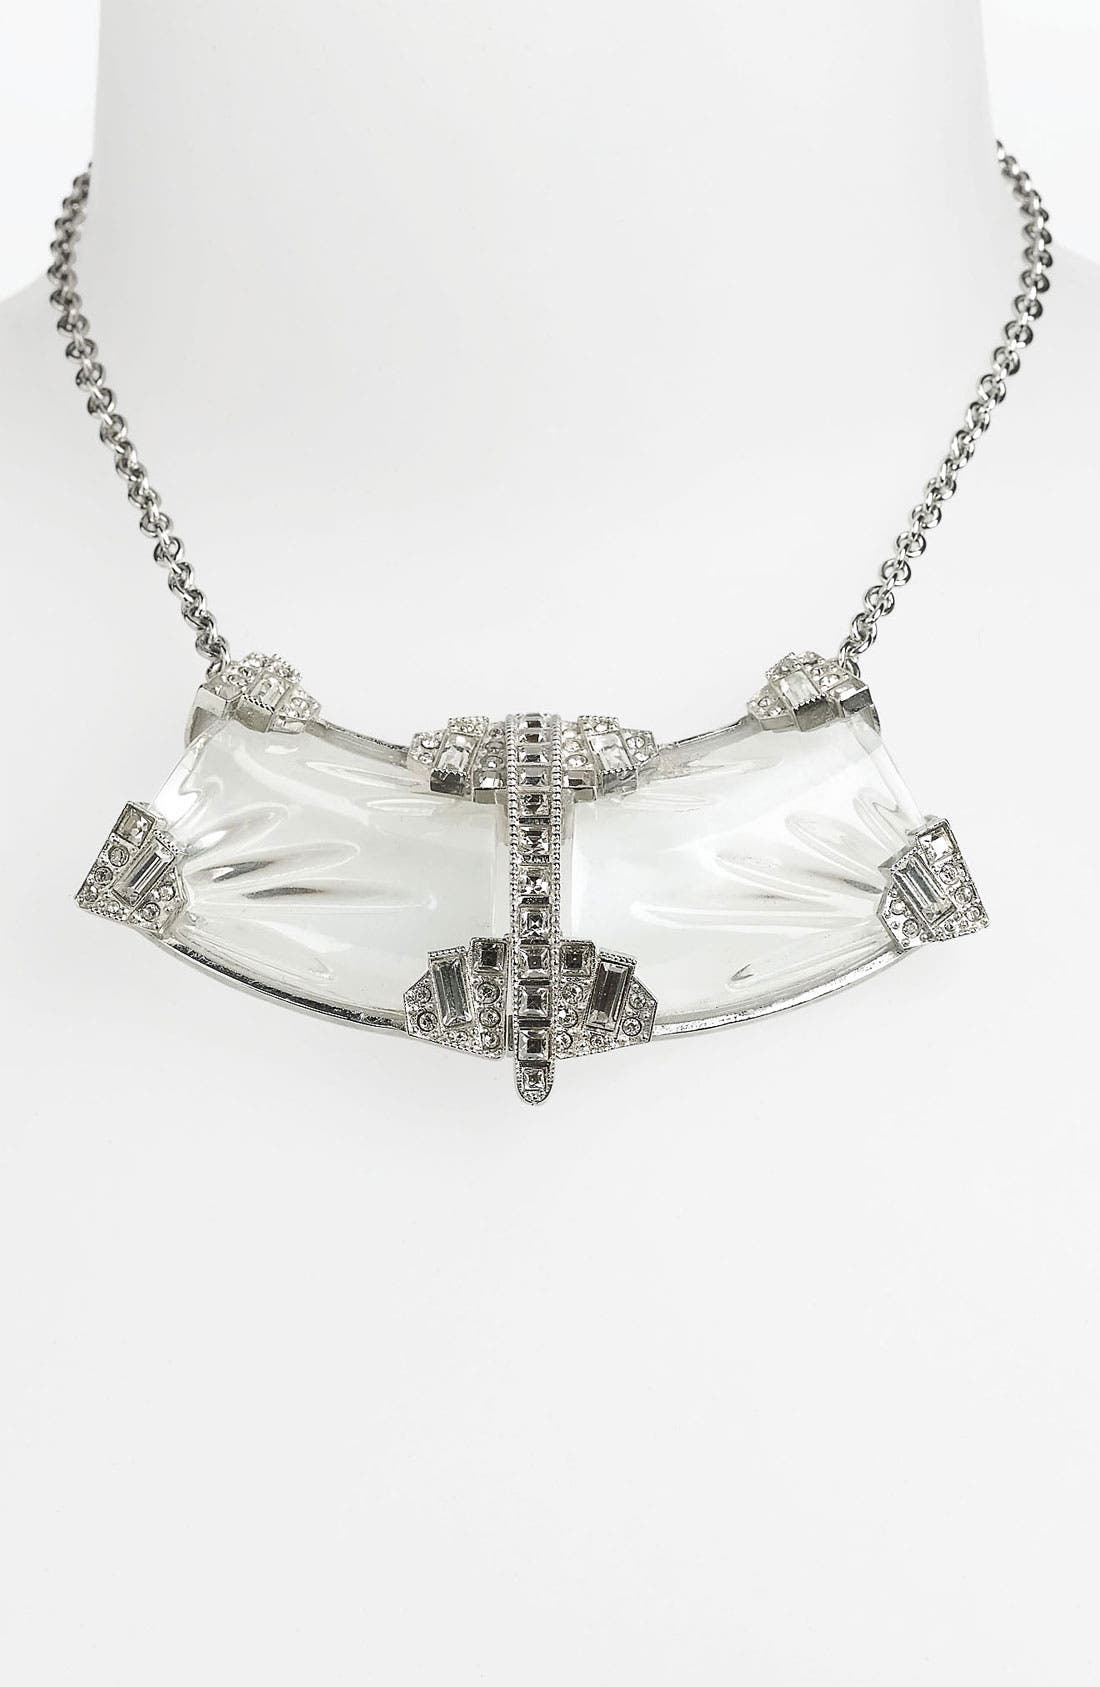 Alternate Image 1 Selected - Alexis Bittar 'Teatro Moderne' Bib Necklace (Nordstrom Exclusive)